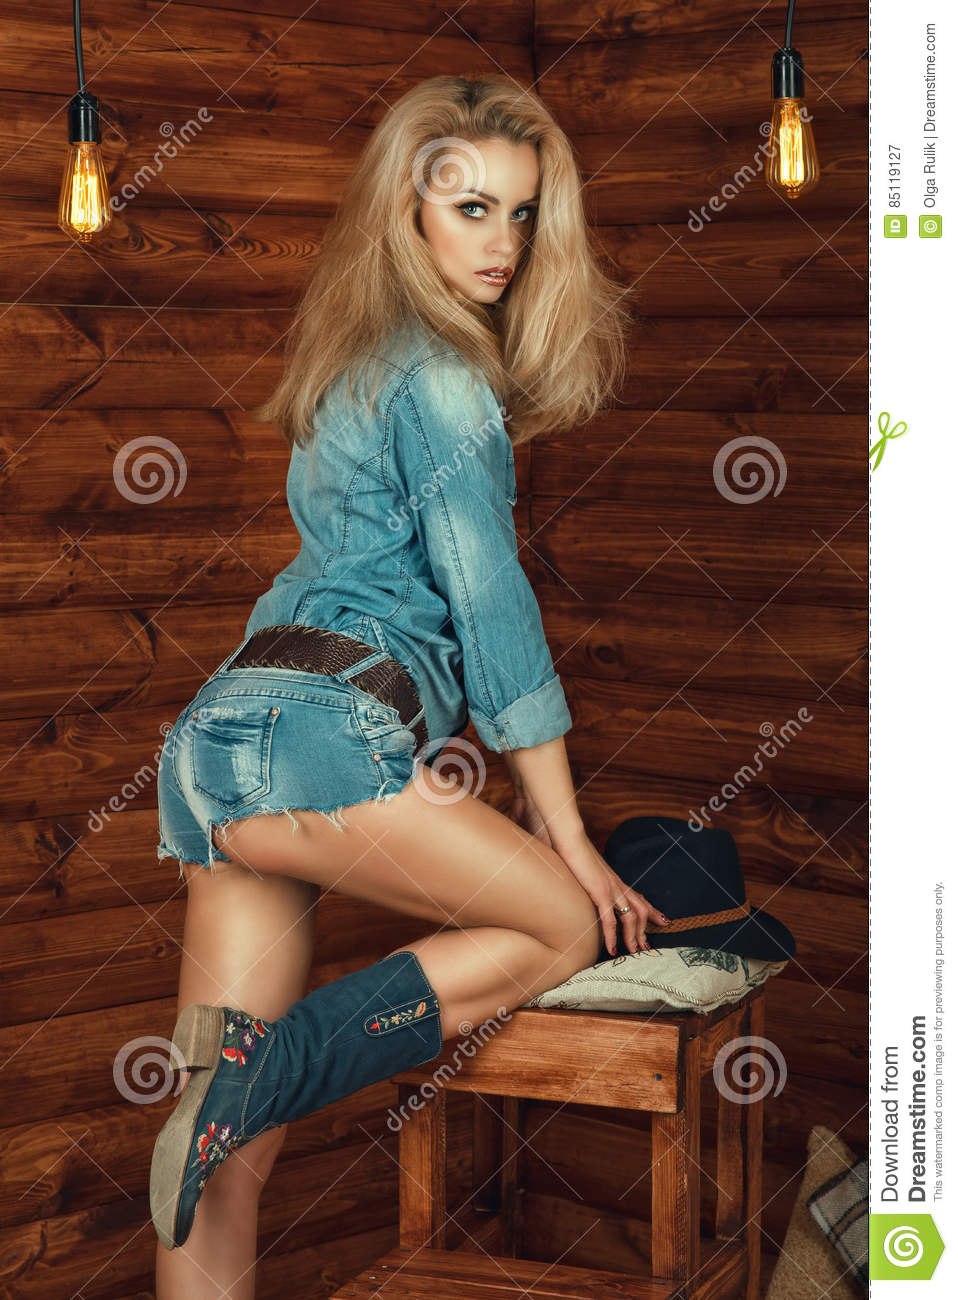 Portrait of gorgeous blond wearing denim shirt, jeans pants and suede boots with floral embroidery